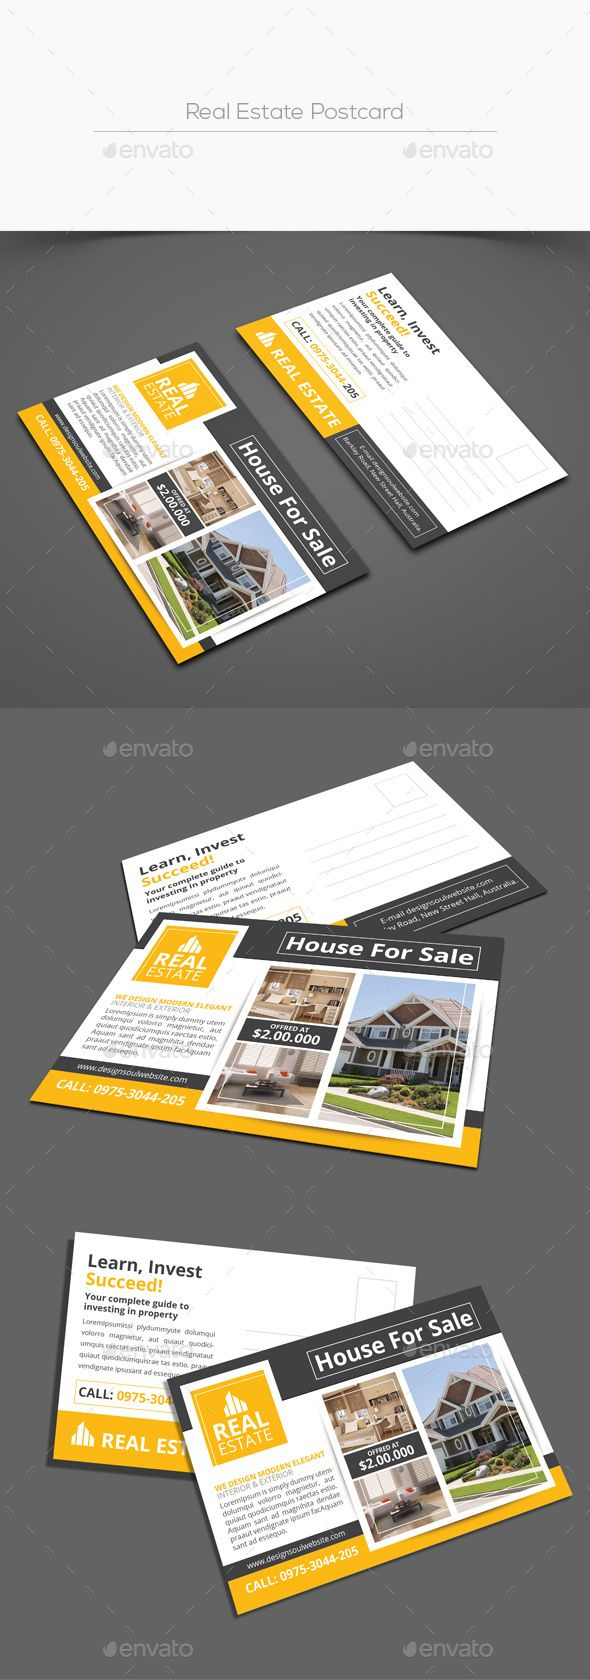 66 best REAL ESTATE FLYERS images on